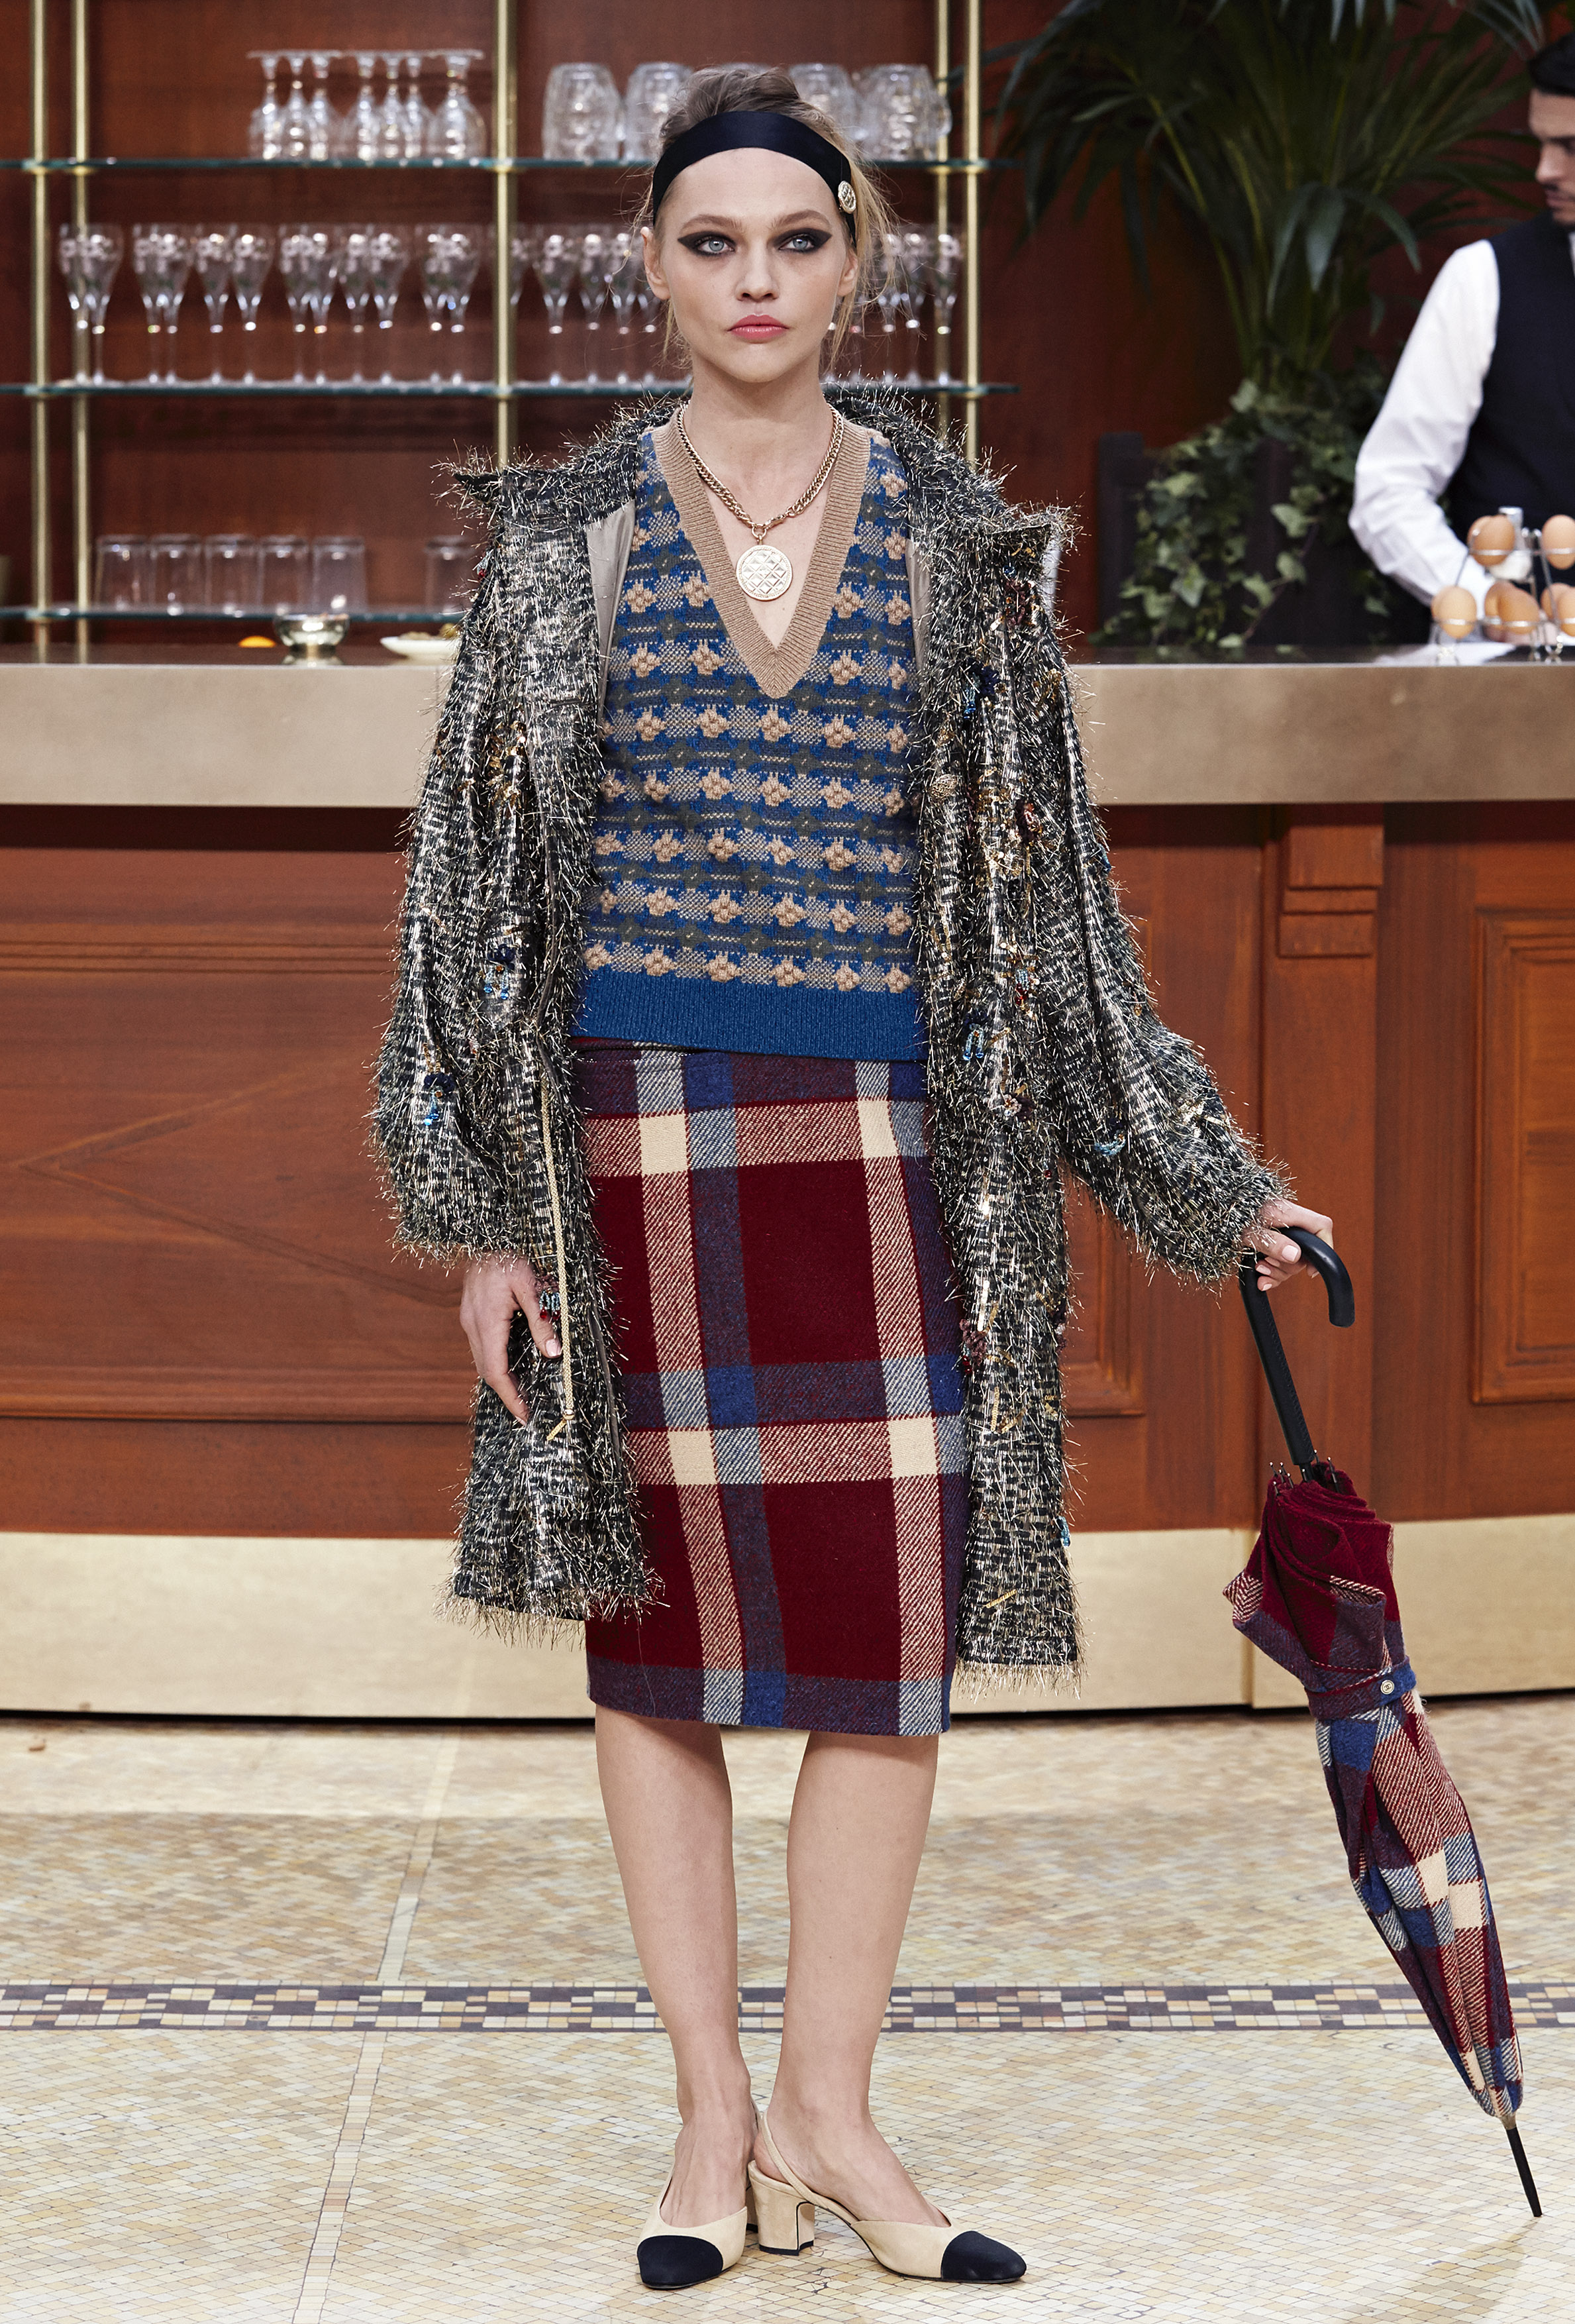 54c008131d0 CHANEL Fall-Winter 2015-2016 Ready-to-Wear collection fabulous muses 2015  trends chanel brasserie (4) ...